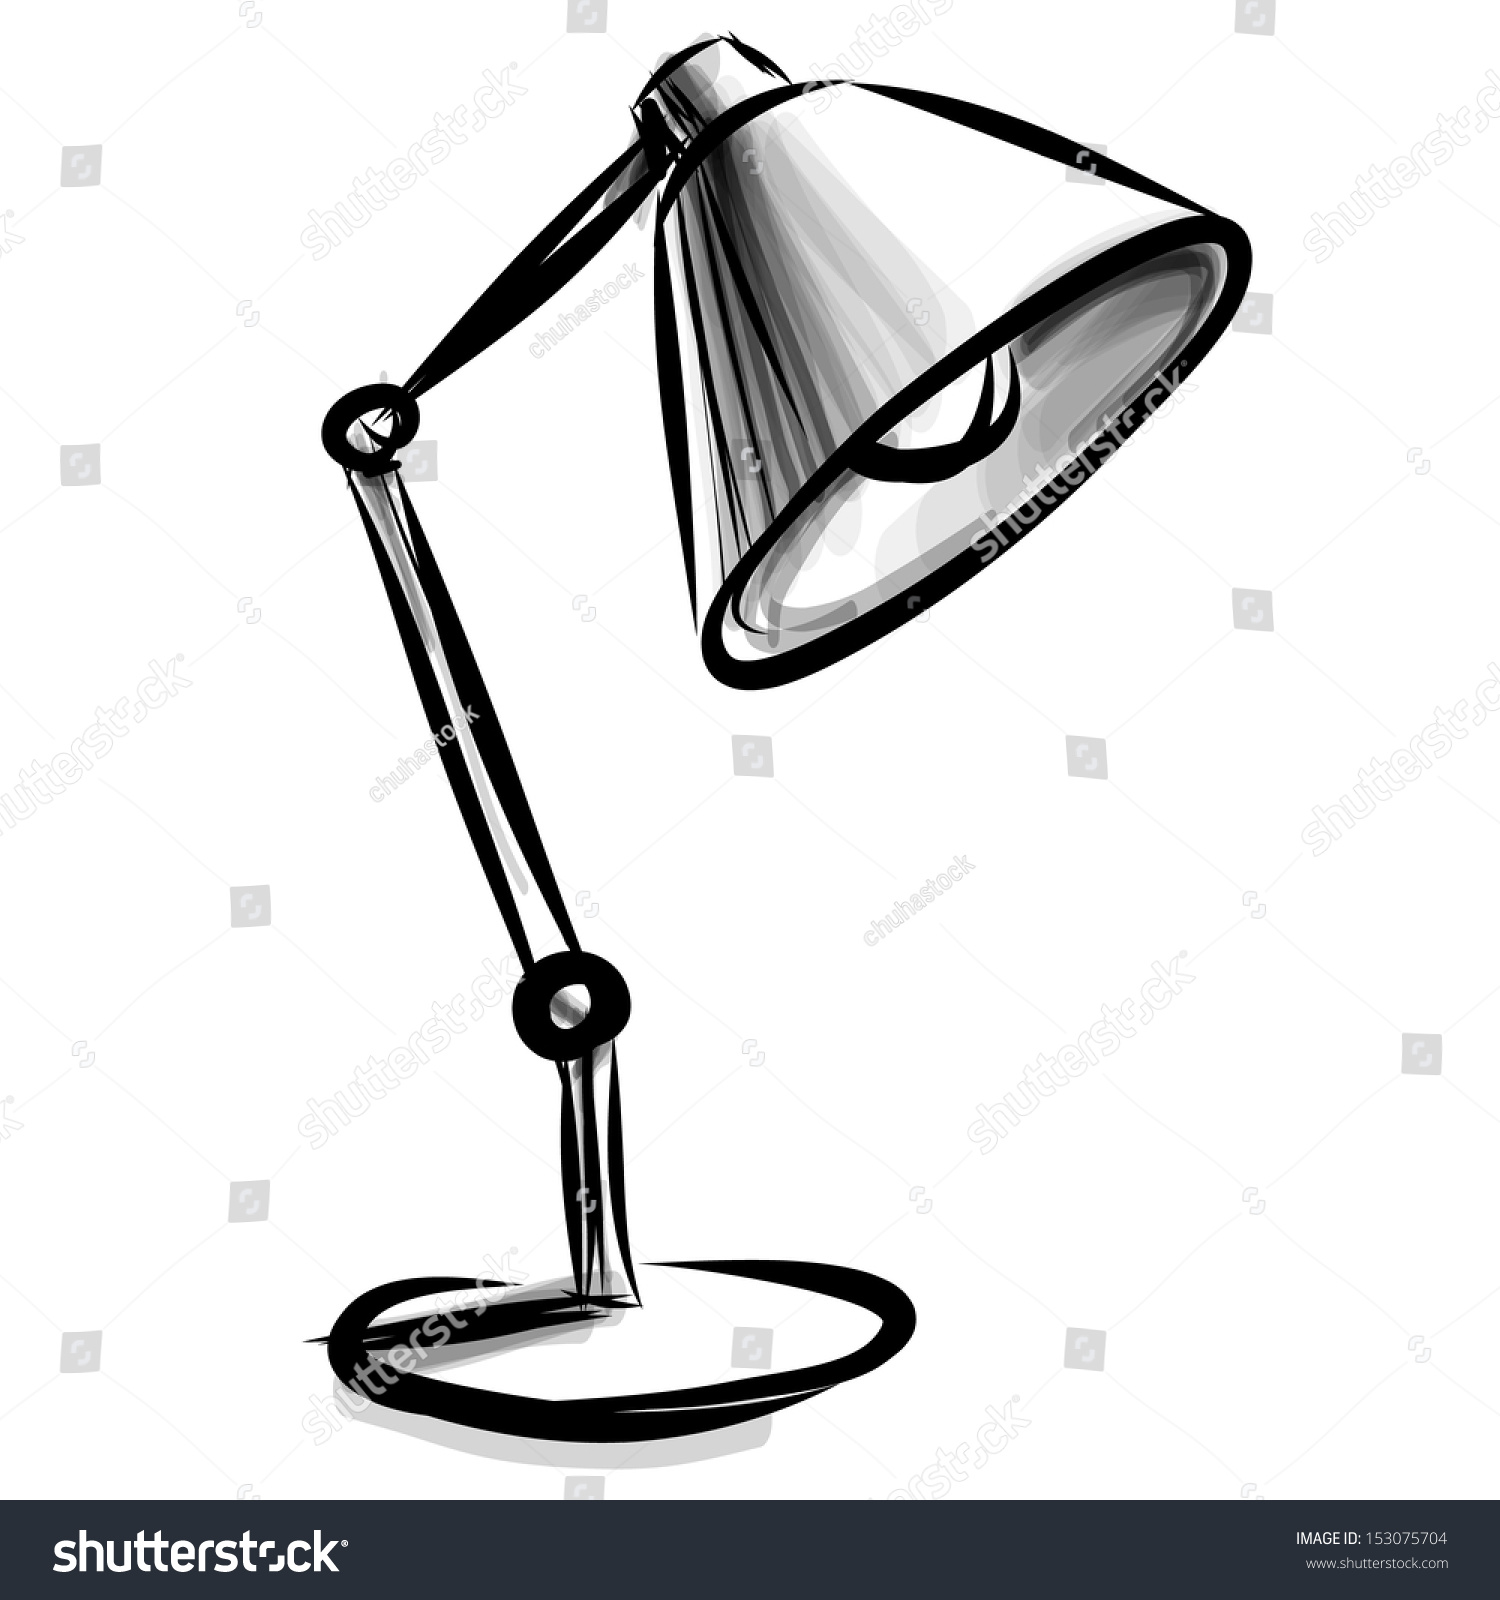 Table lamp for drawing - Adjustable Table Lamp Sketch Vector Illustration